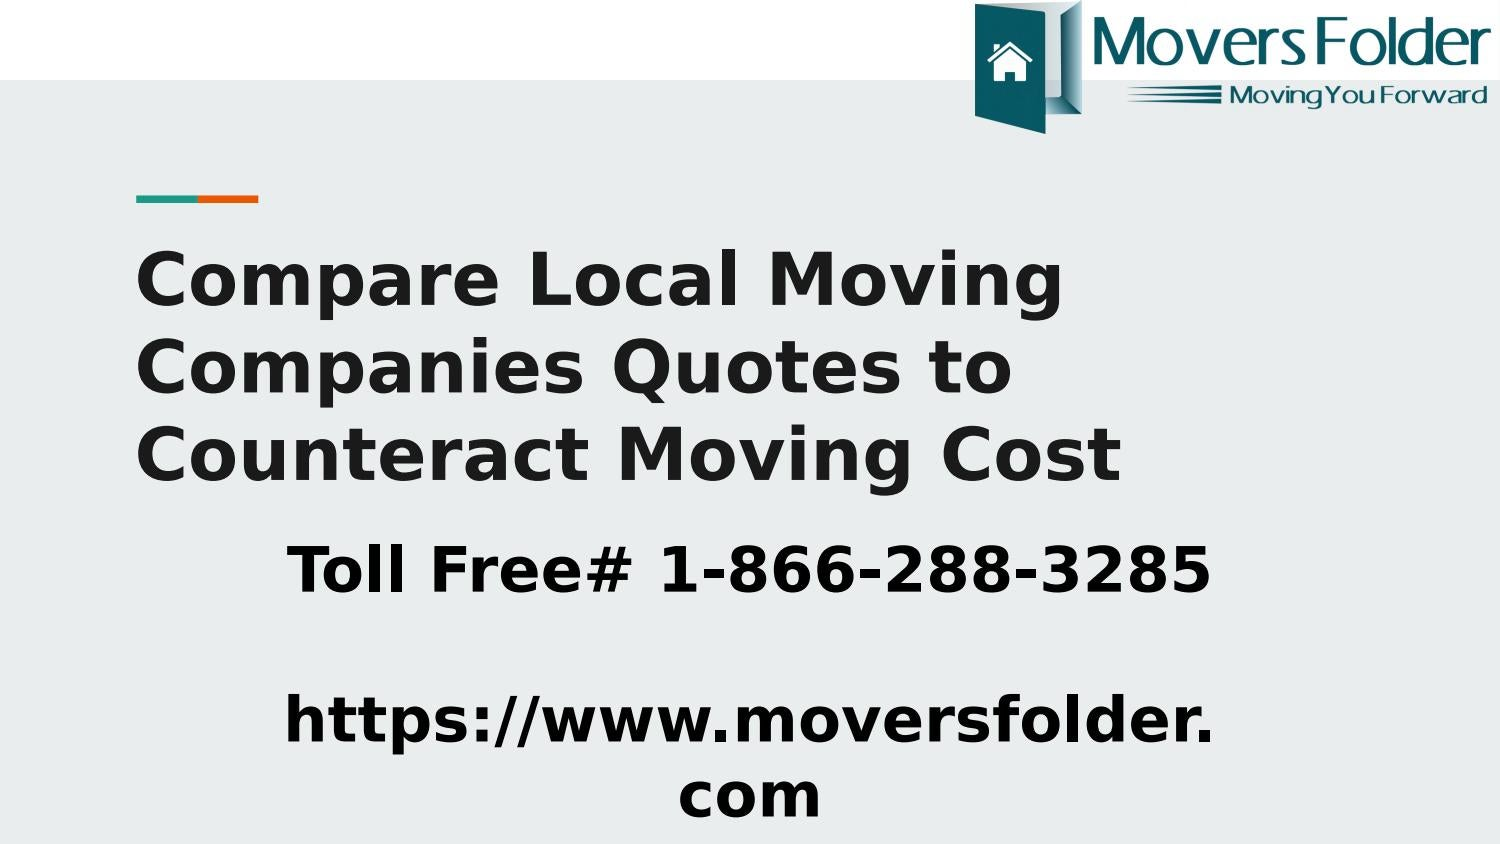 Moving Company Quotes >> Compare Local Moving Companies Quotes To Counteract Moving